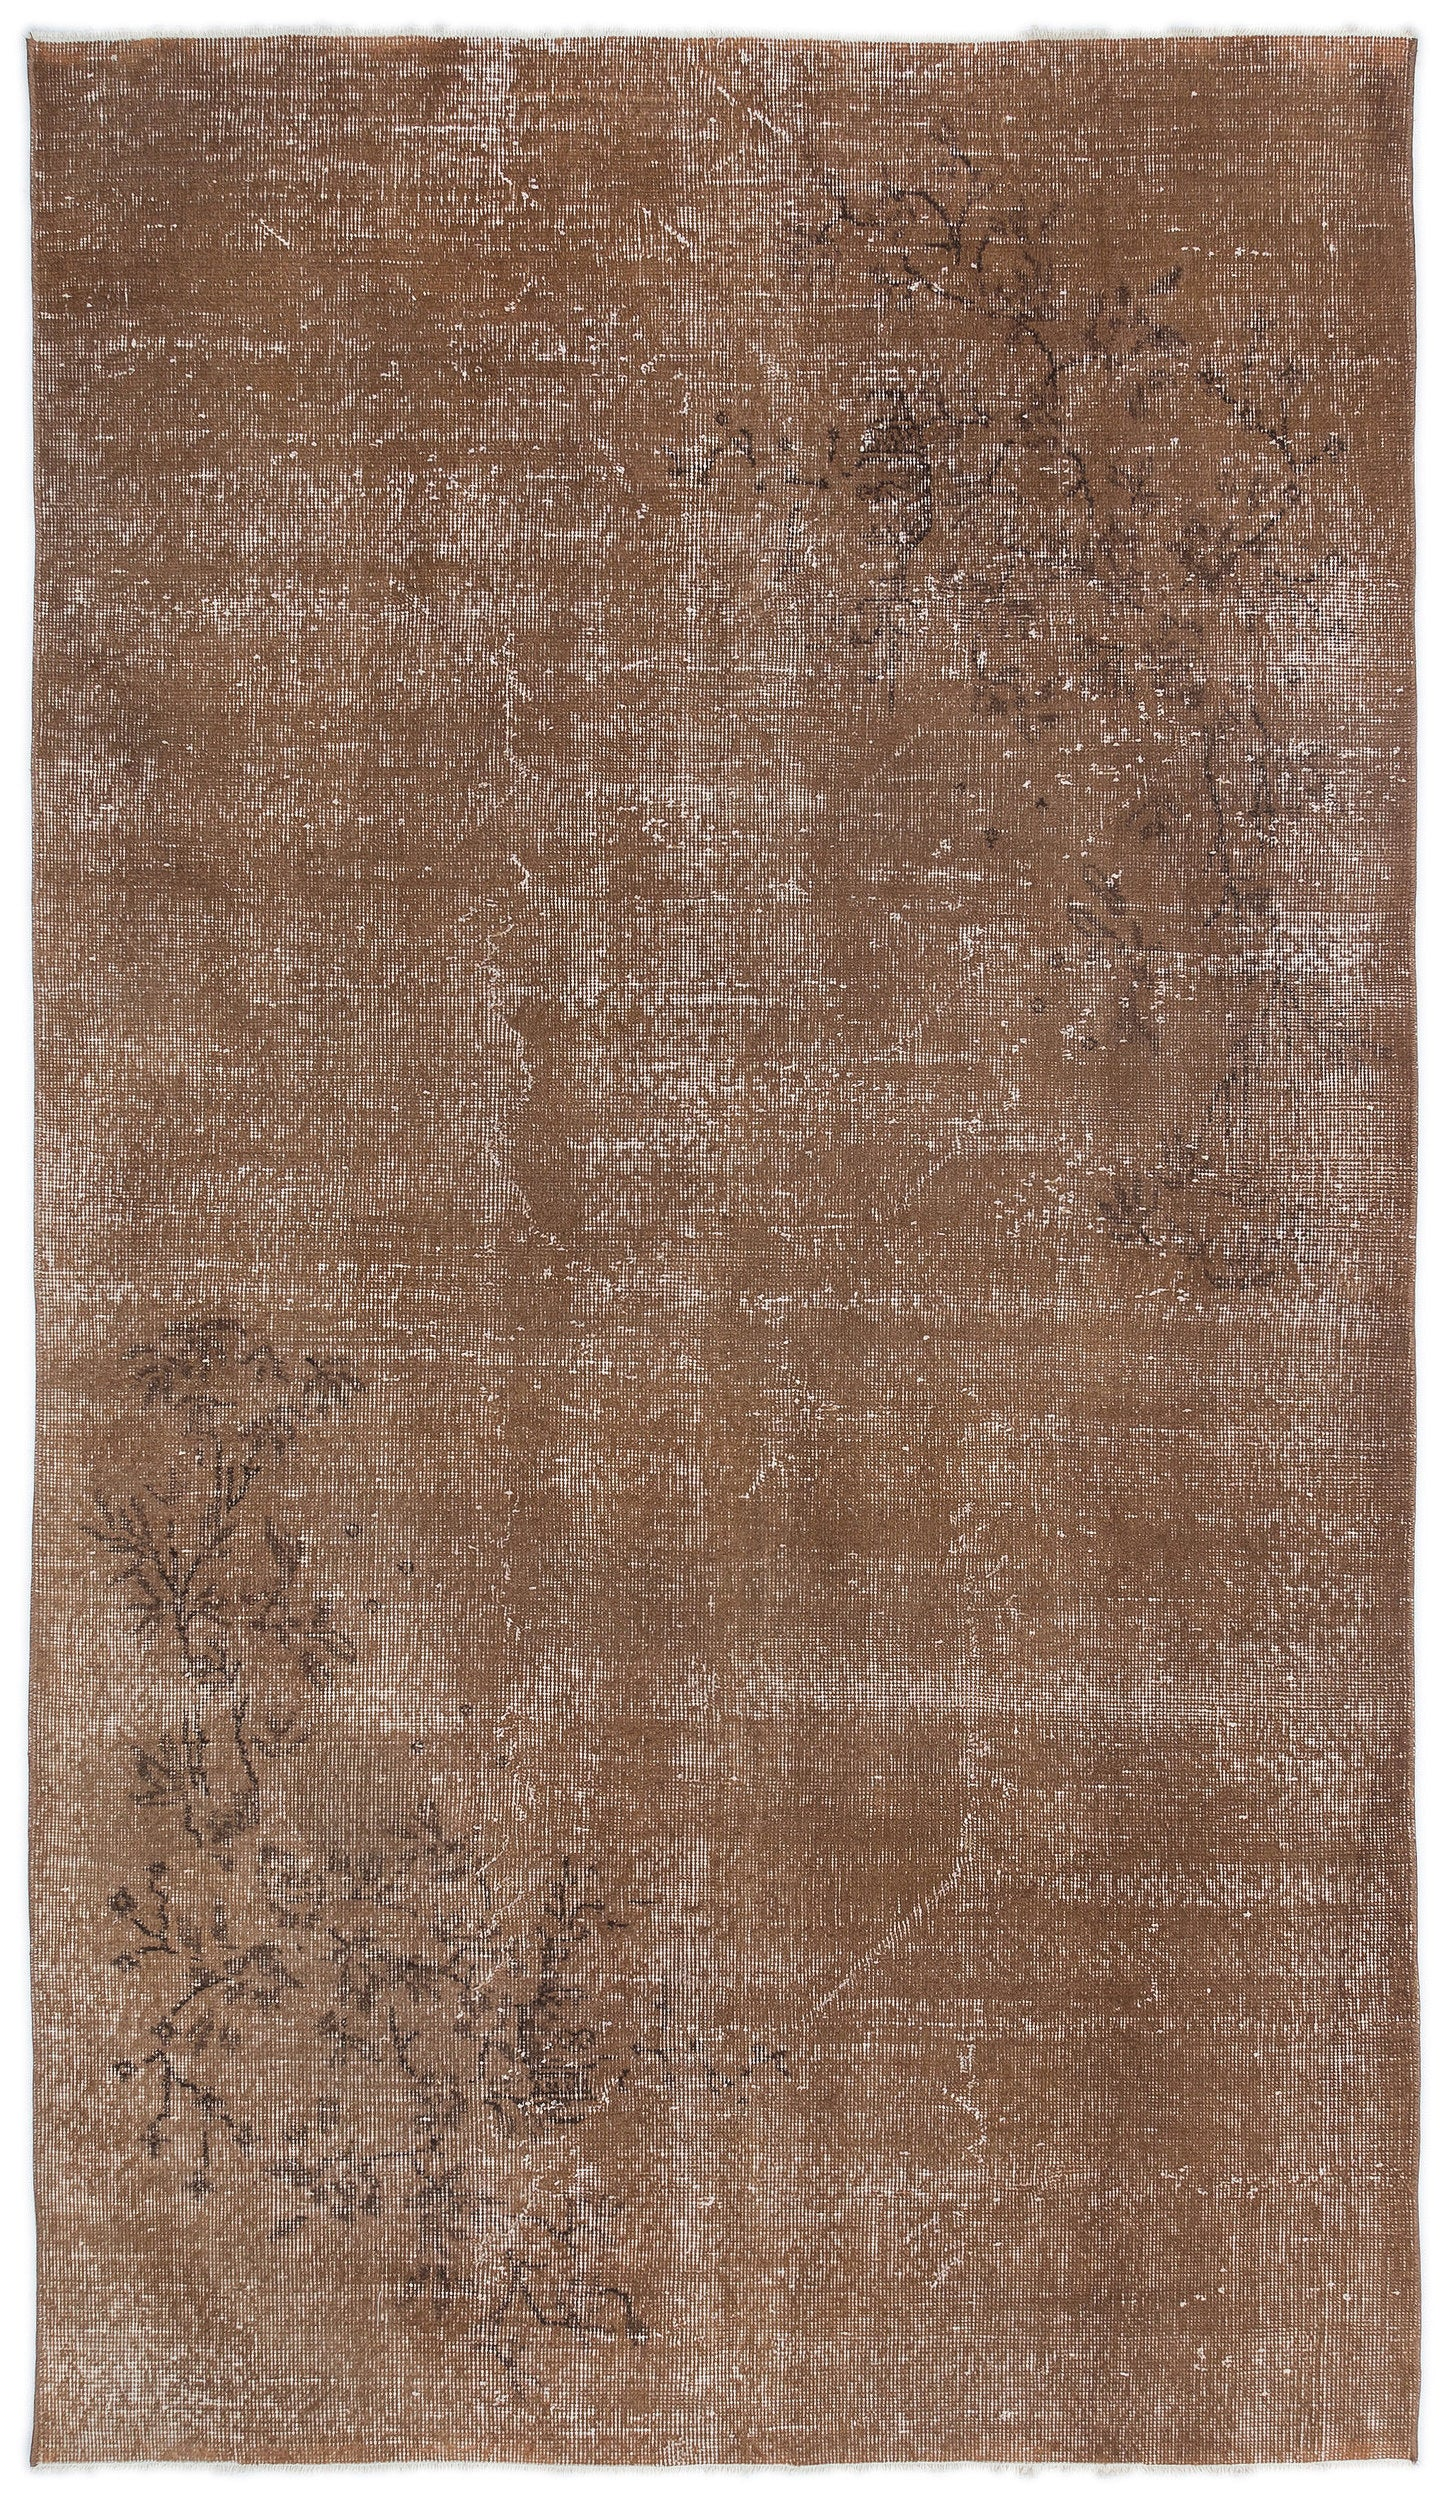 Brown Over Dyed Vintage Rug 4'9'' x 8'4'' ft 145 x 254 cm